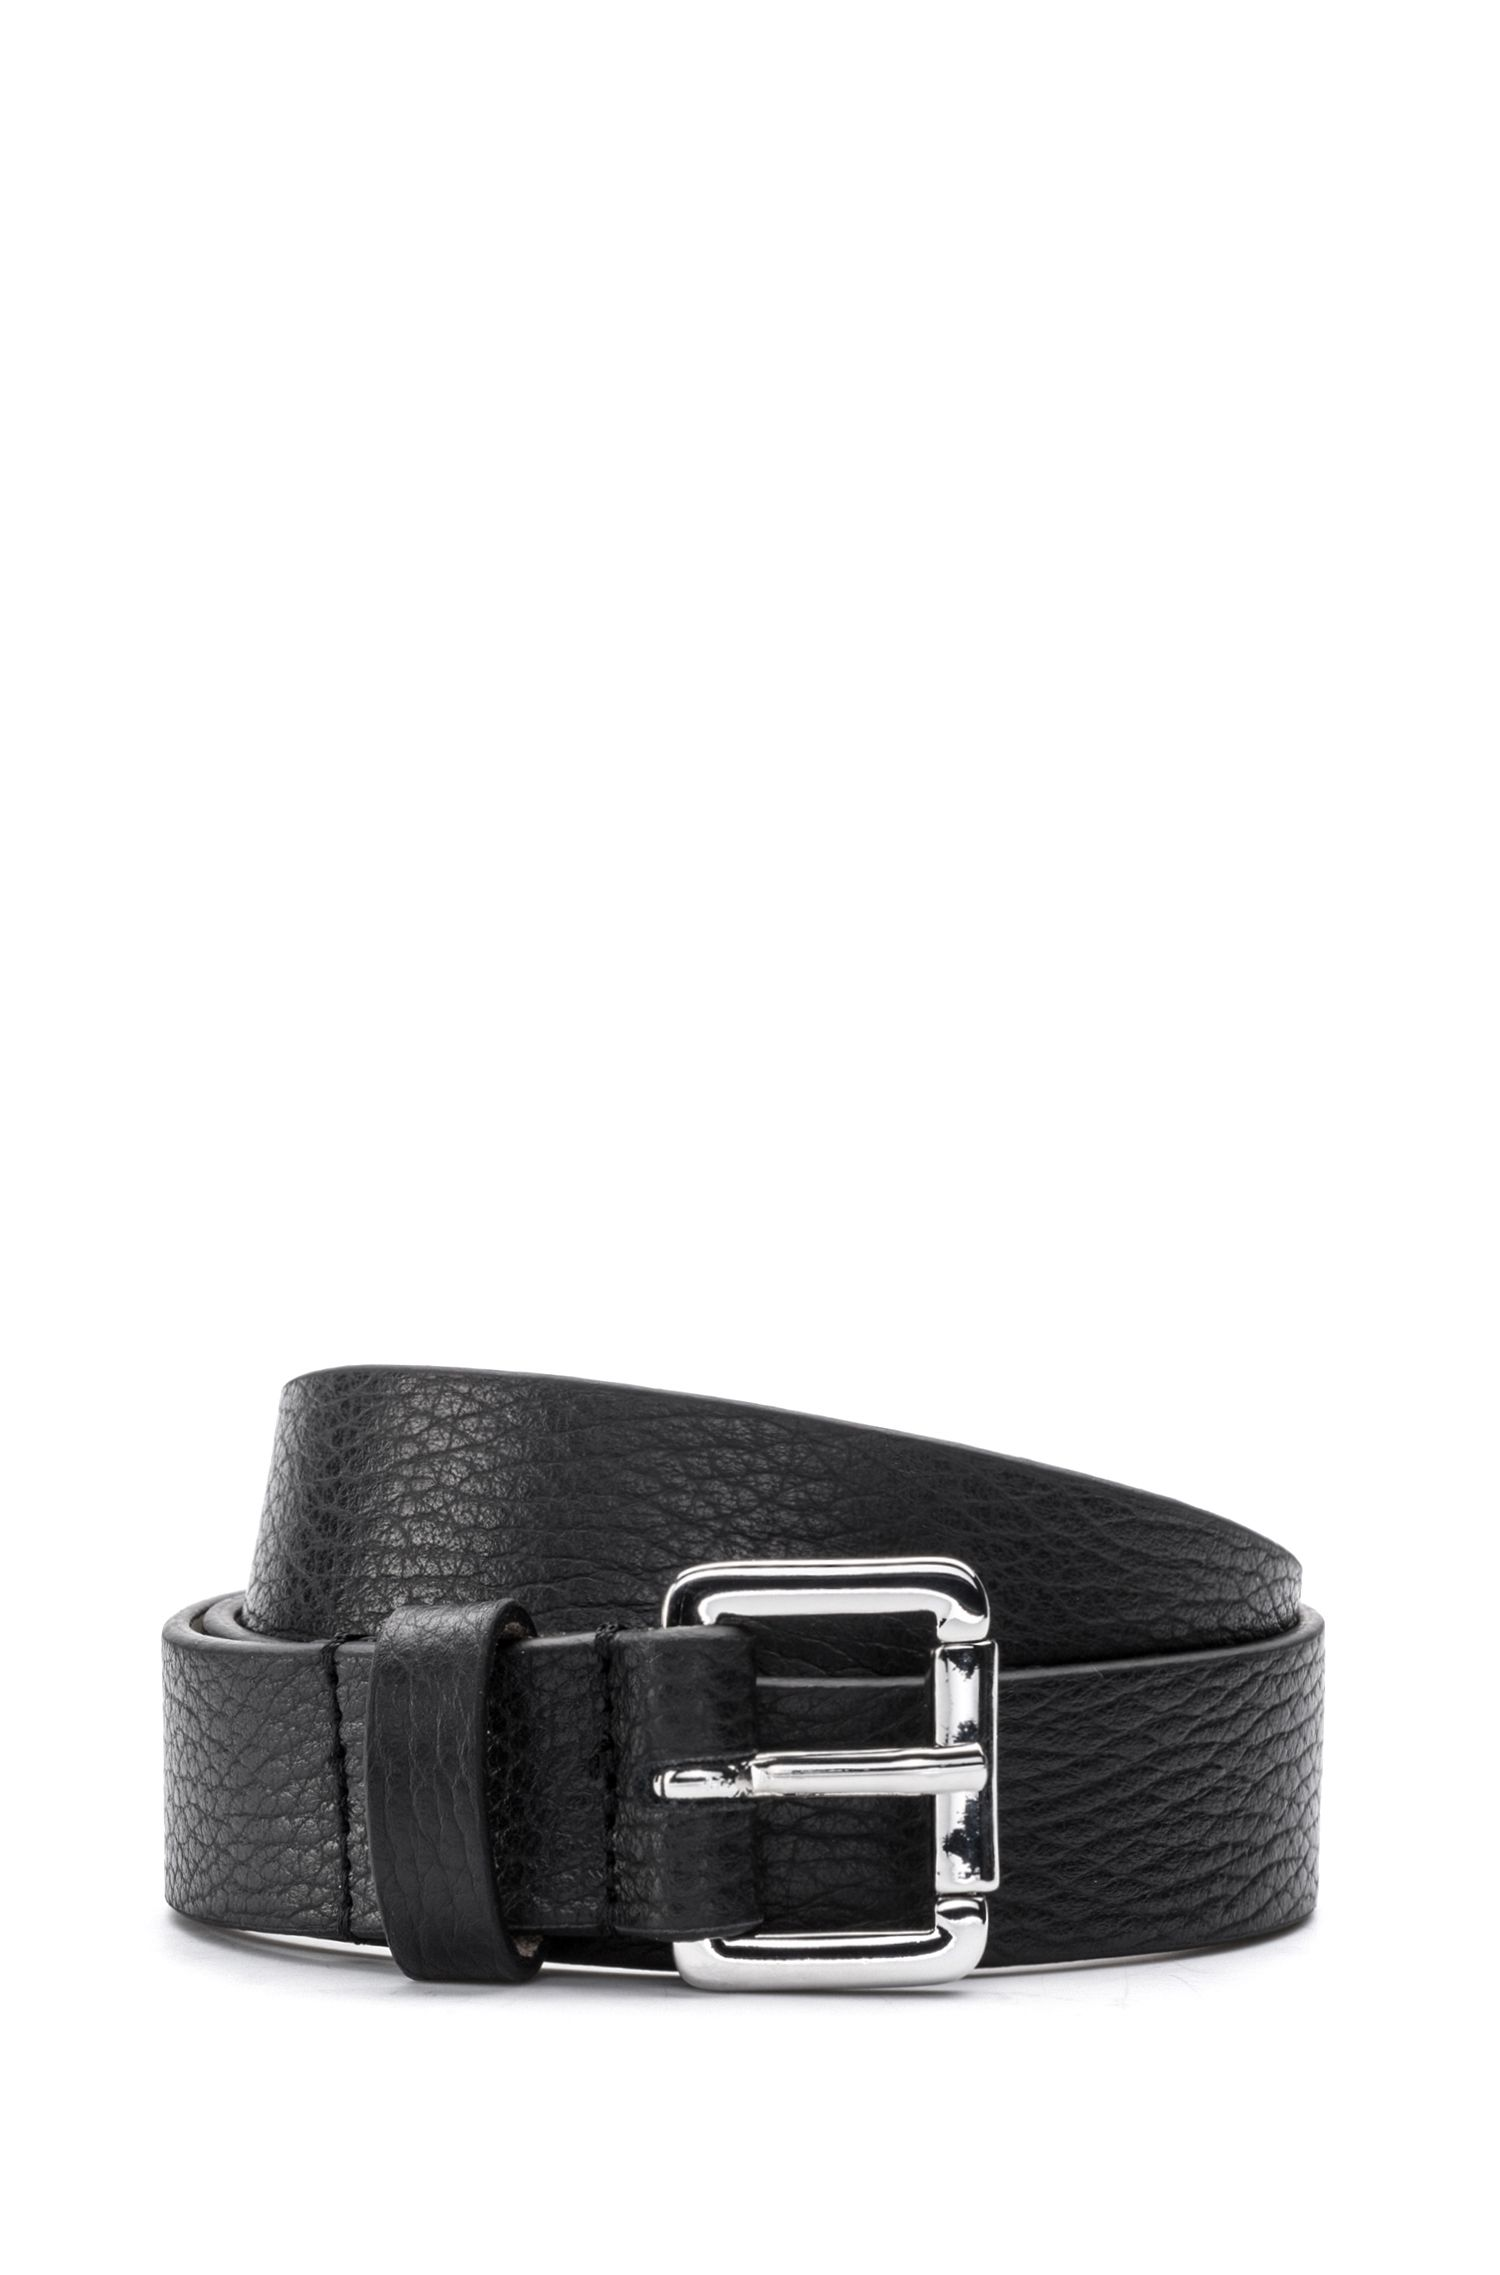 Italian-leather belt with polished buckle, Black